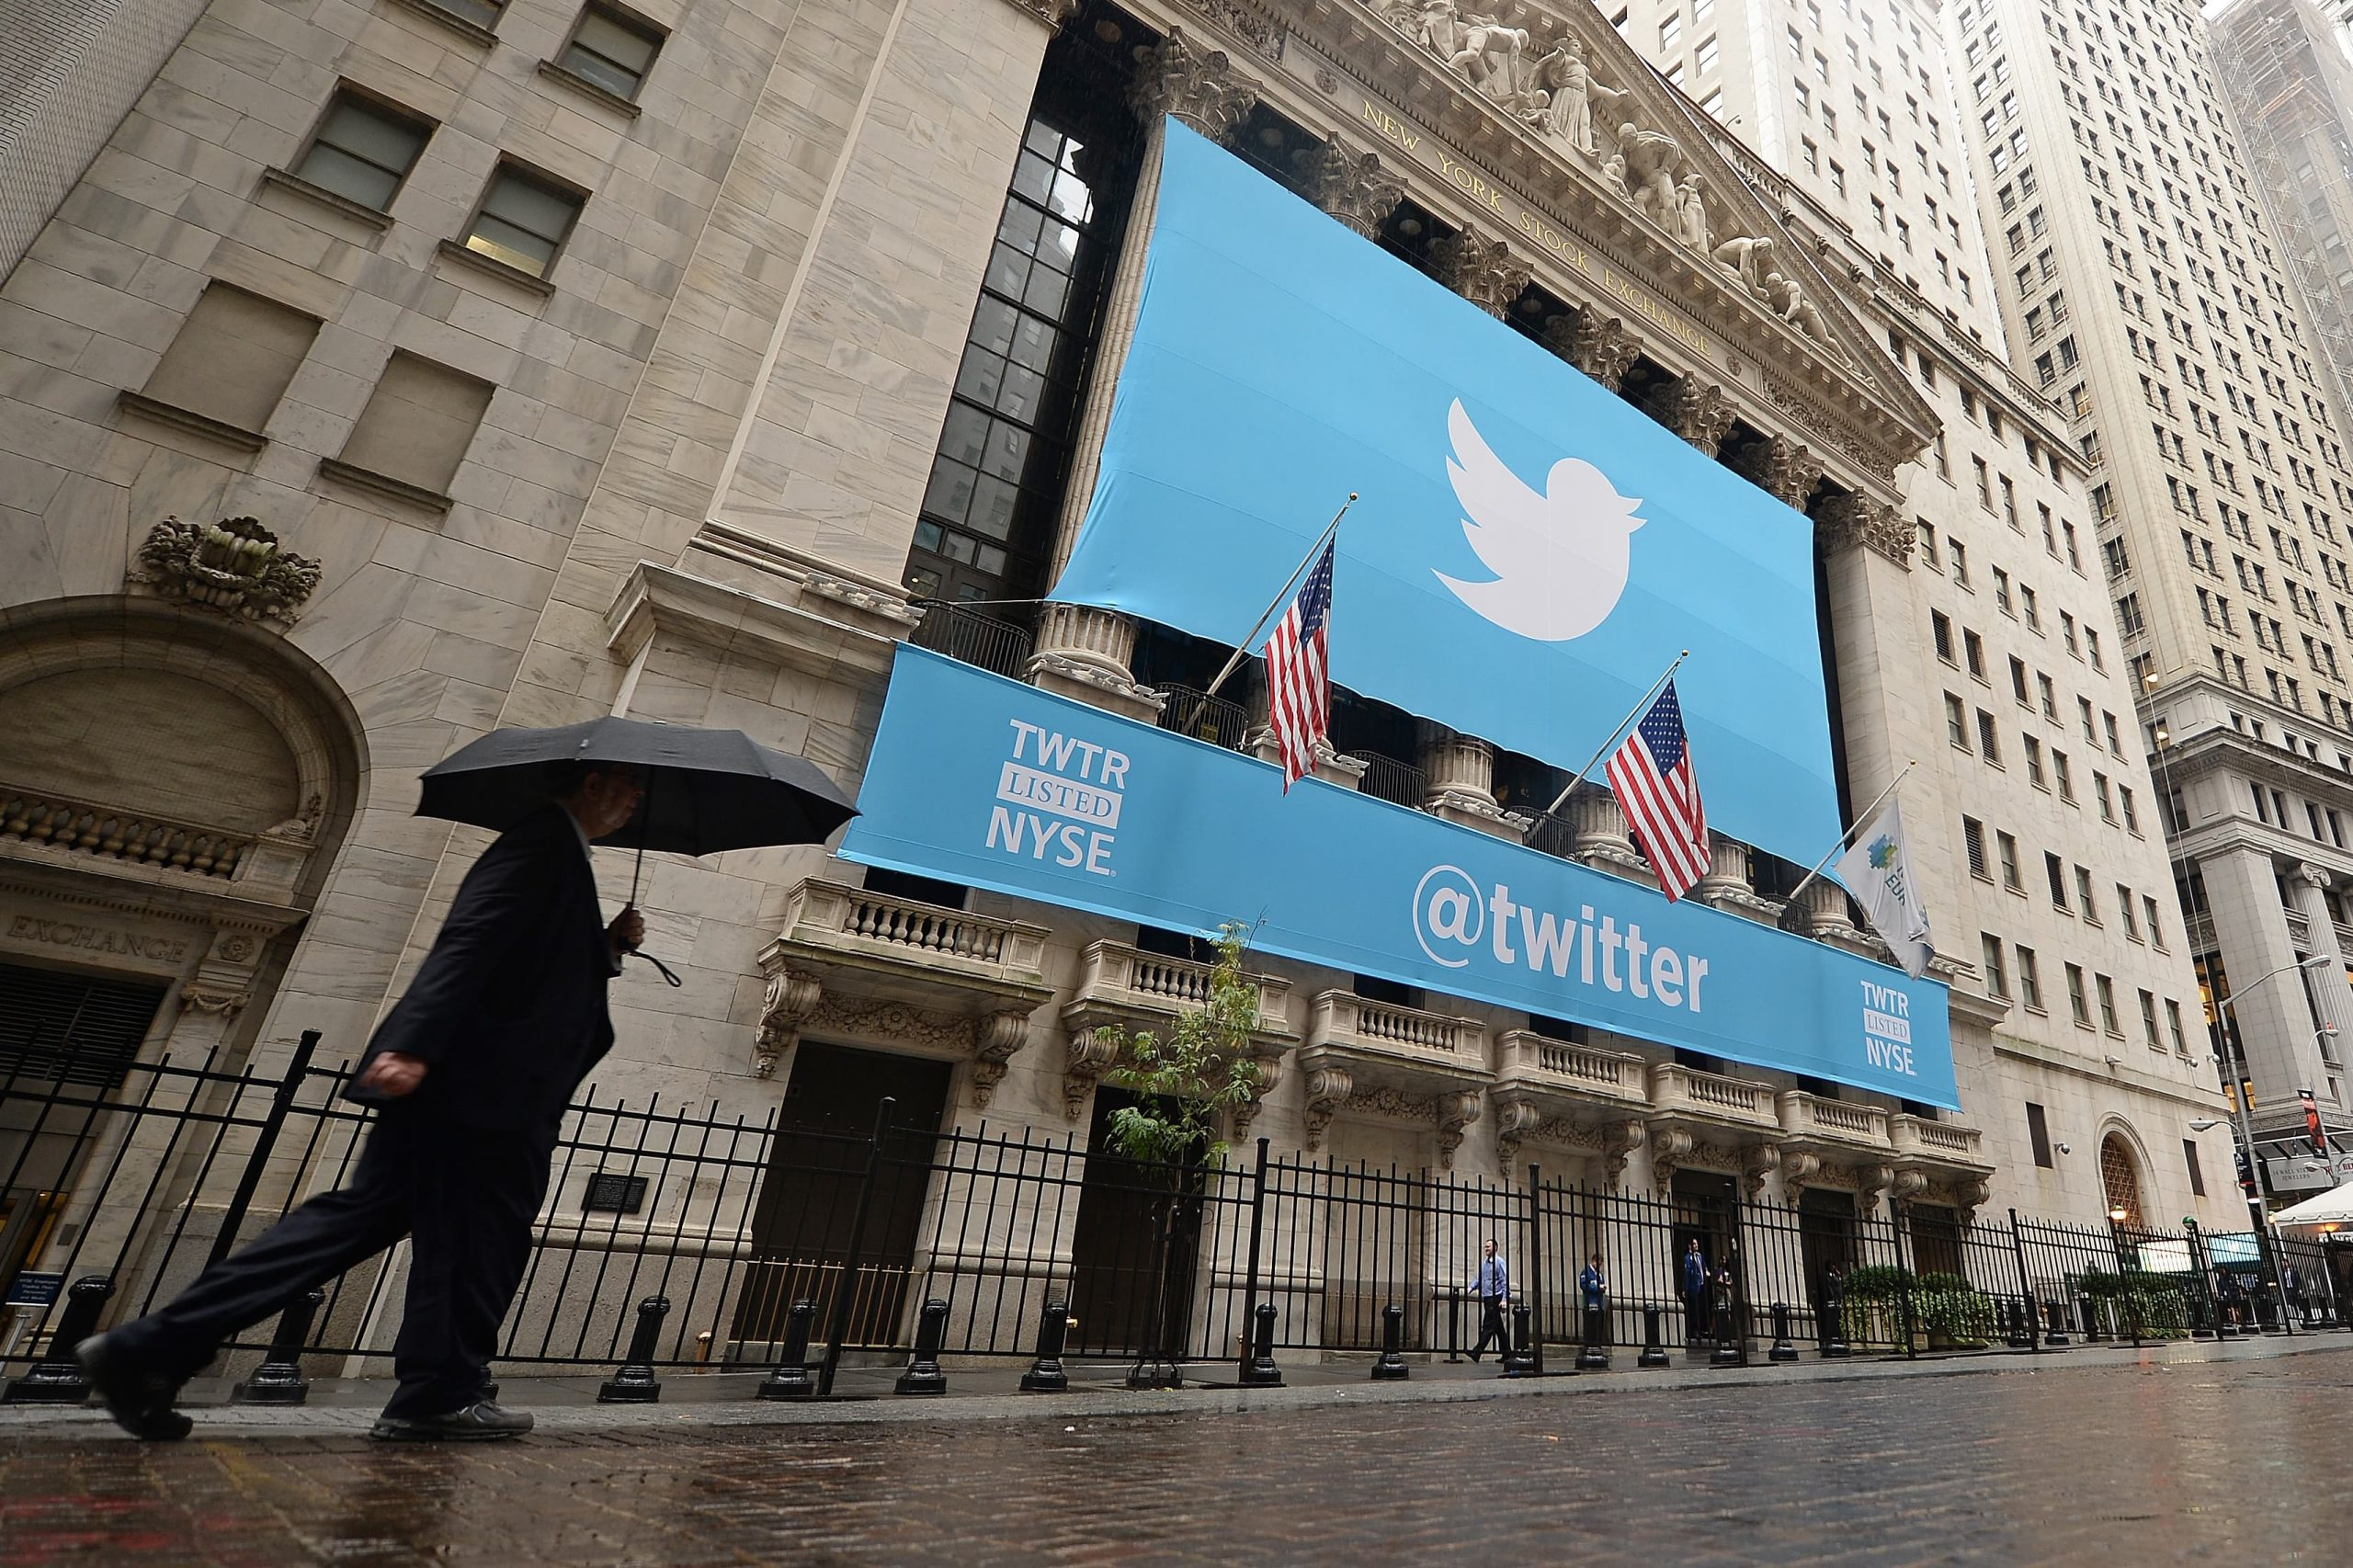 JPMorgan upgrades Twitter, makes it a top pick for 2021